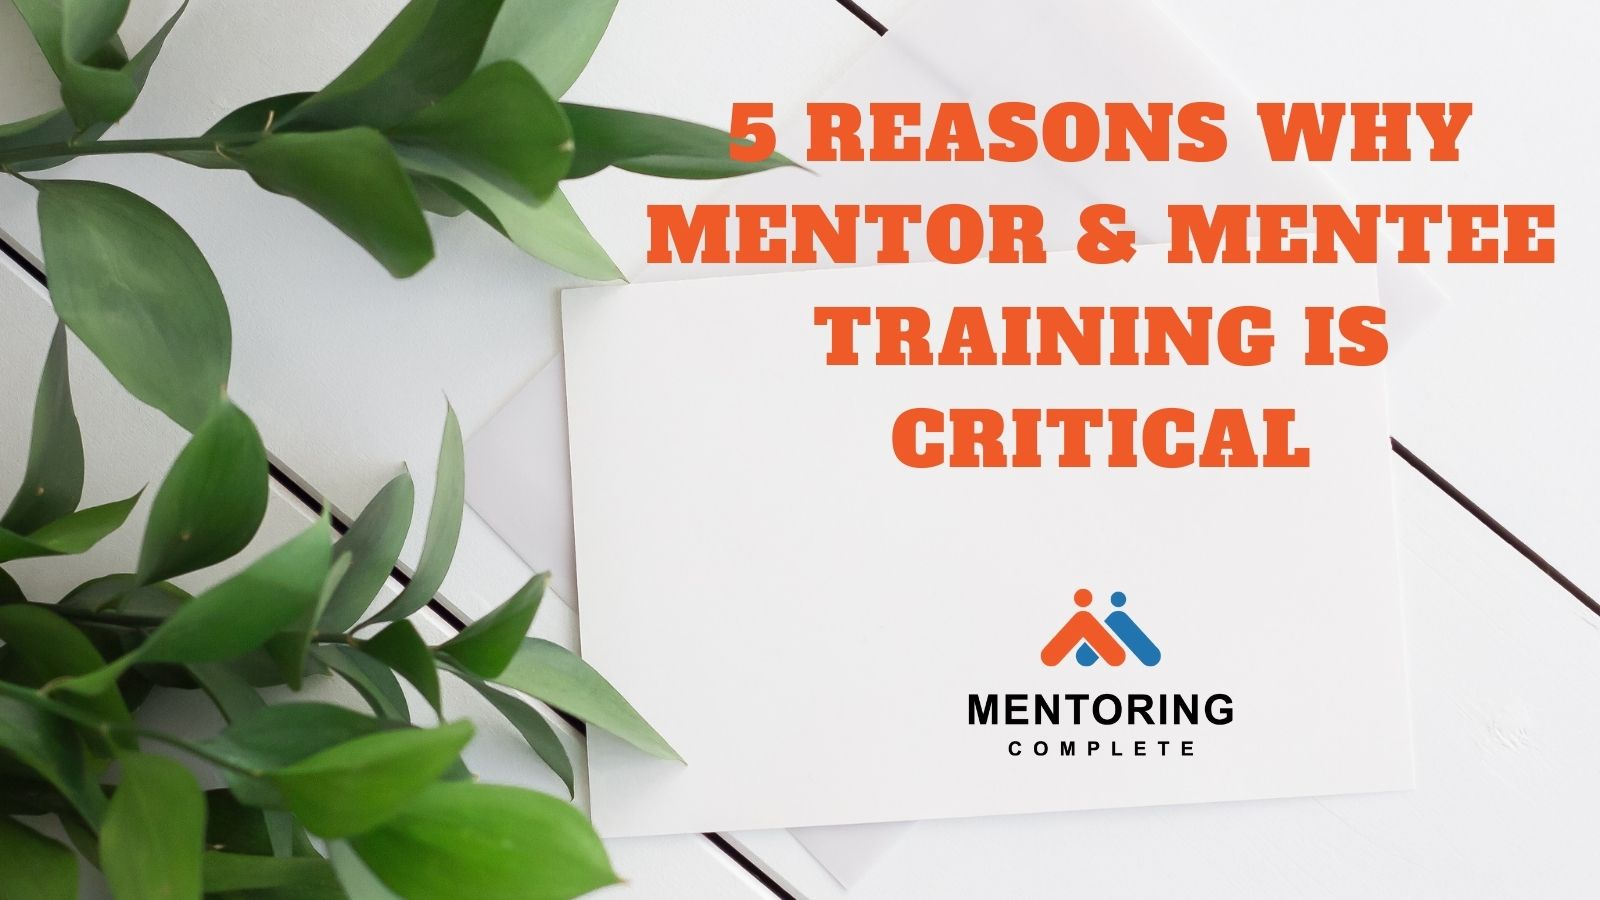 5 reasons why mentor and mentee training is critical